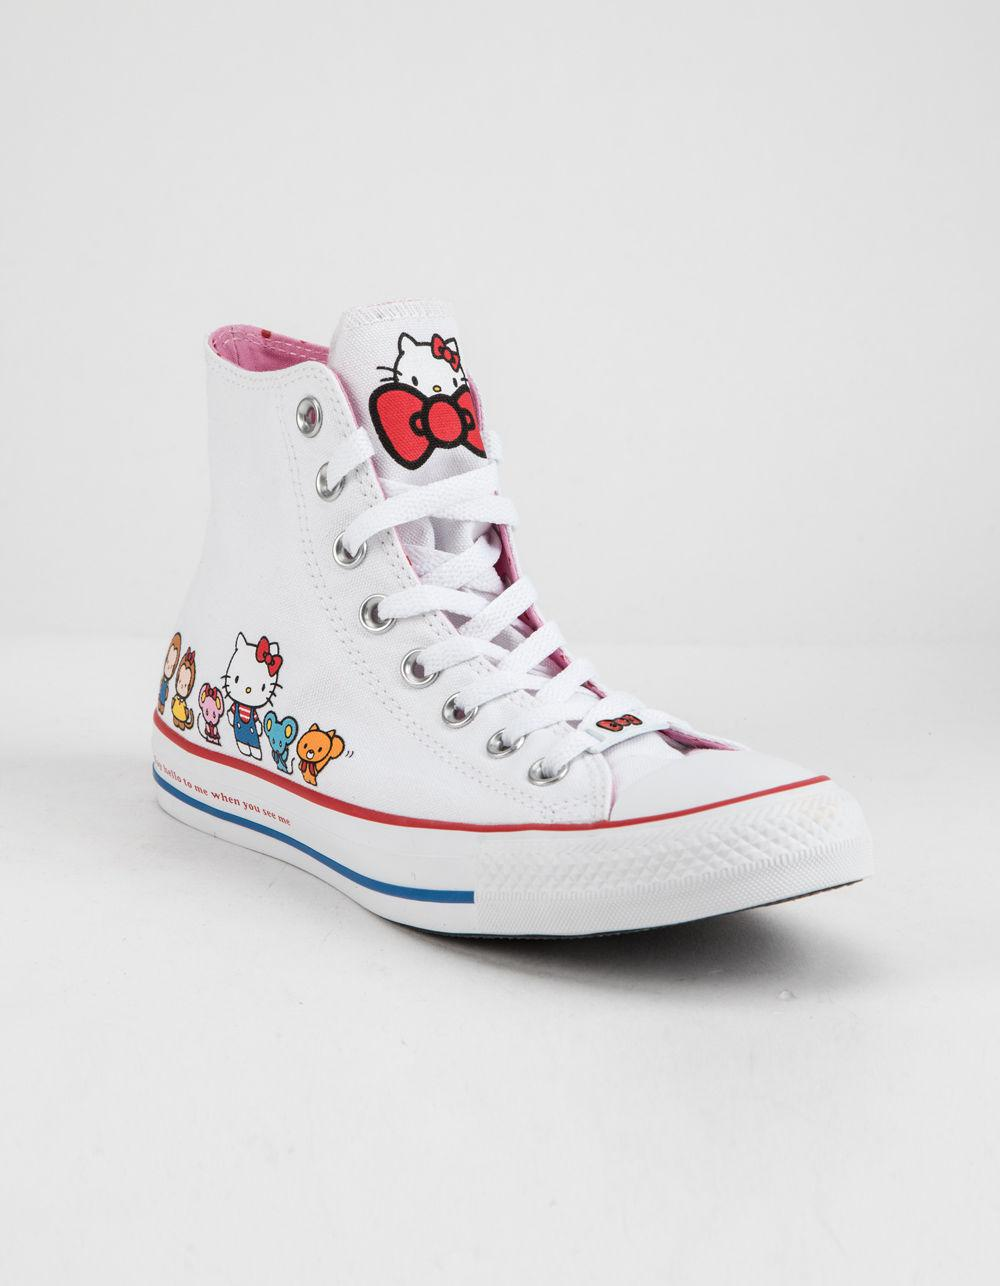 63d2dd75221017 Lyst - Converse X Hello Kitty Chuck Taylor All Star White   Prism ...